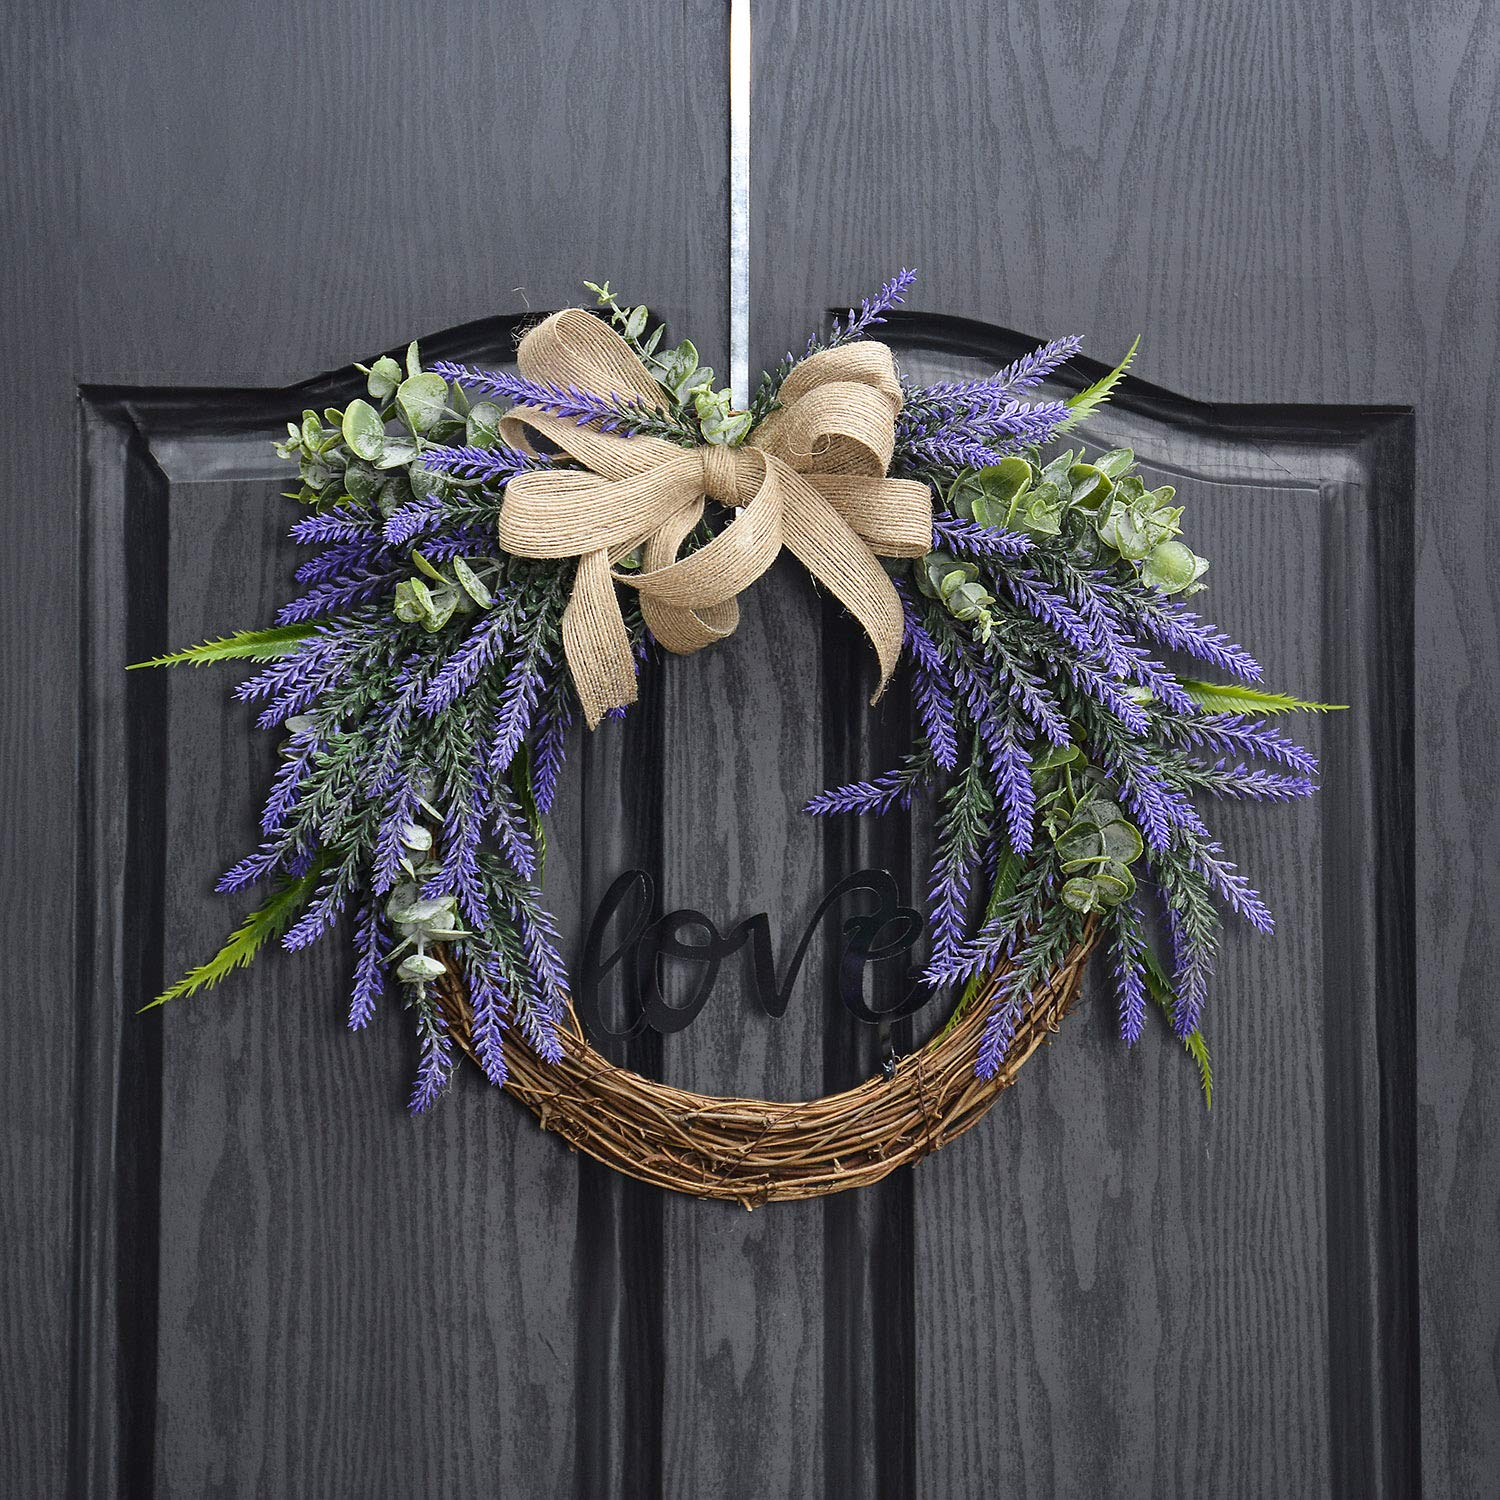 QUNWREATH Handmade 14 inch Lavender Series Wreath,Love Letter,Burlap Wreath,Fall Wreath,Wreath for Front Door,Rustic Wreath,Farmhouse Wreath,Grapevine Wreath,Light up Wreath,Everyday Wreath,QUNW03